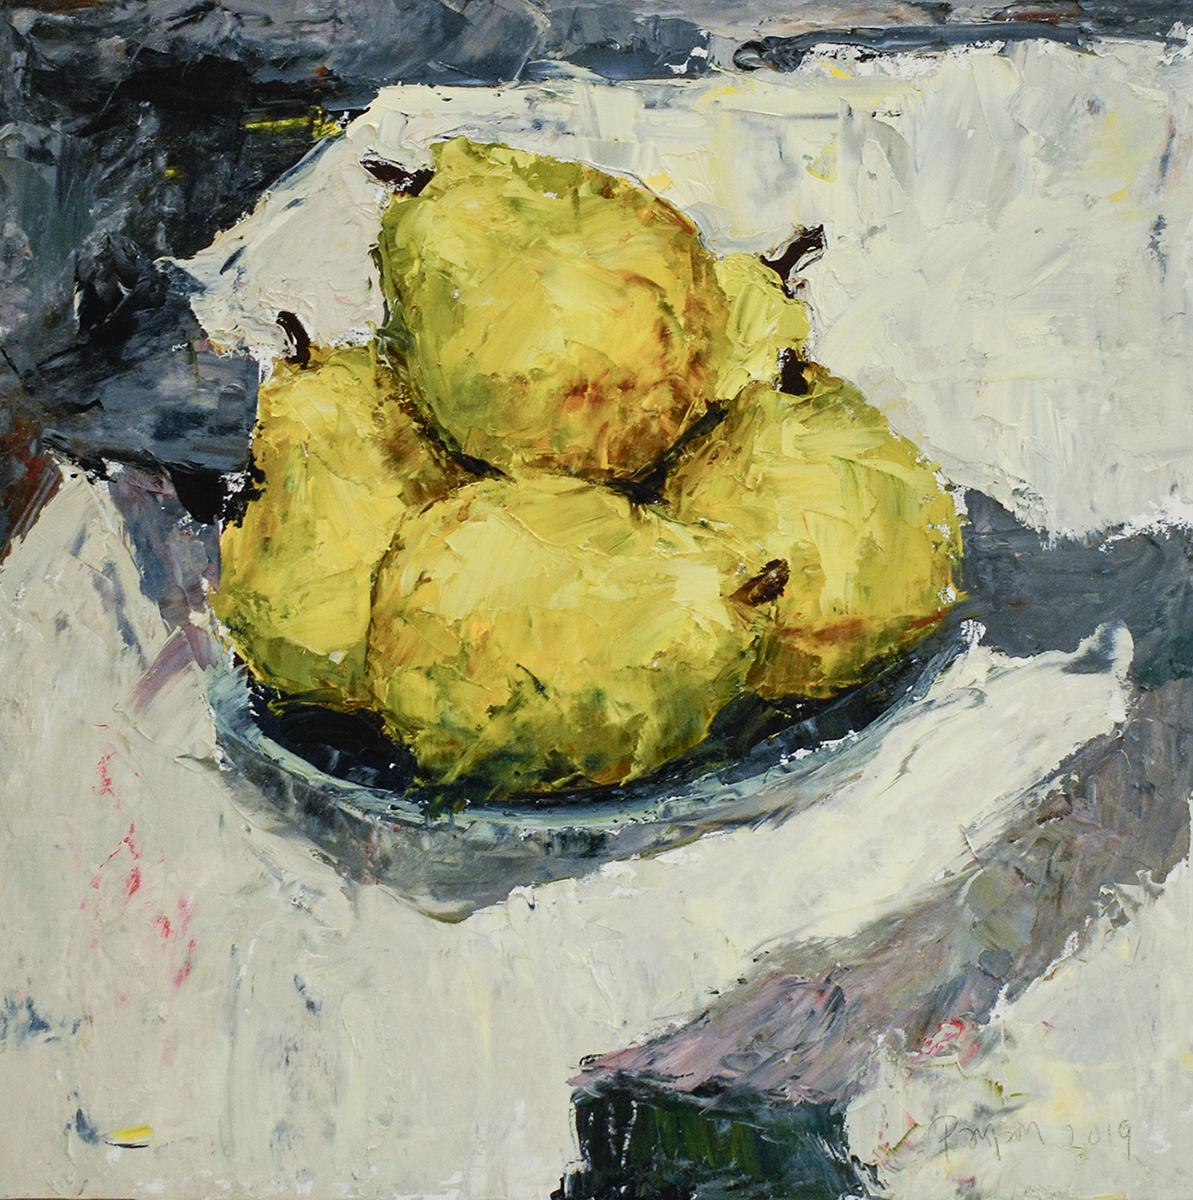 Pears II (Impressionistic Fruit Still Life Painting of Chartreuse Yellow Pears)